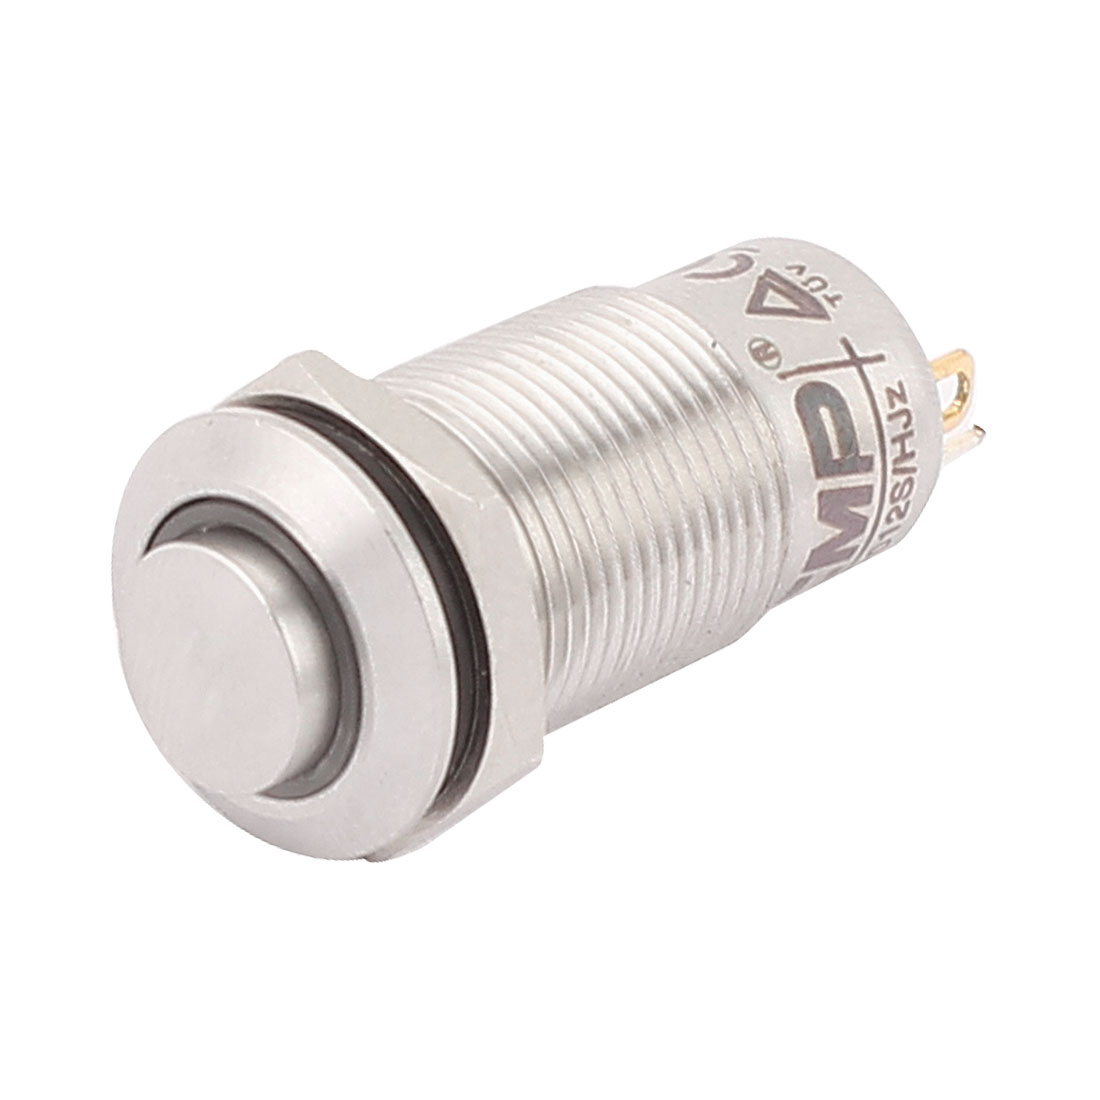 DC 2V Blue LED Lamp 12mm Mounted Thread 4 Pins SPST High Head Latching Push Button Switch